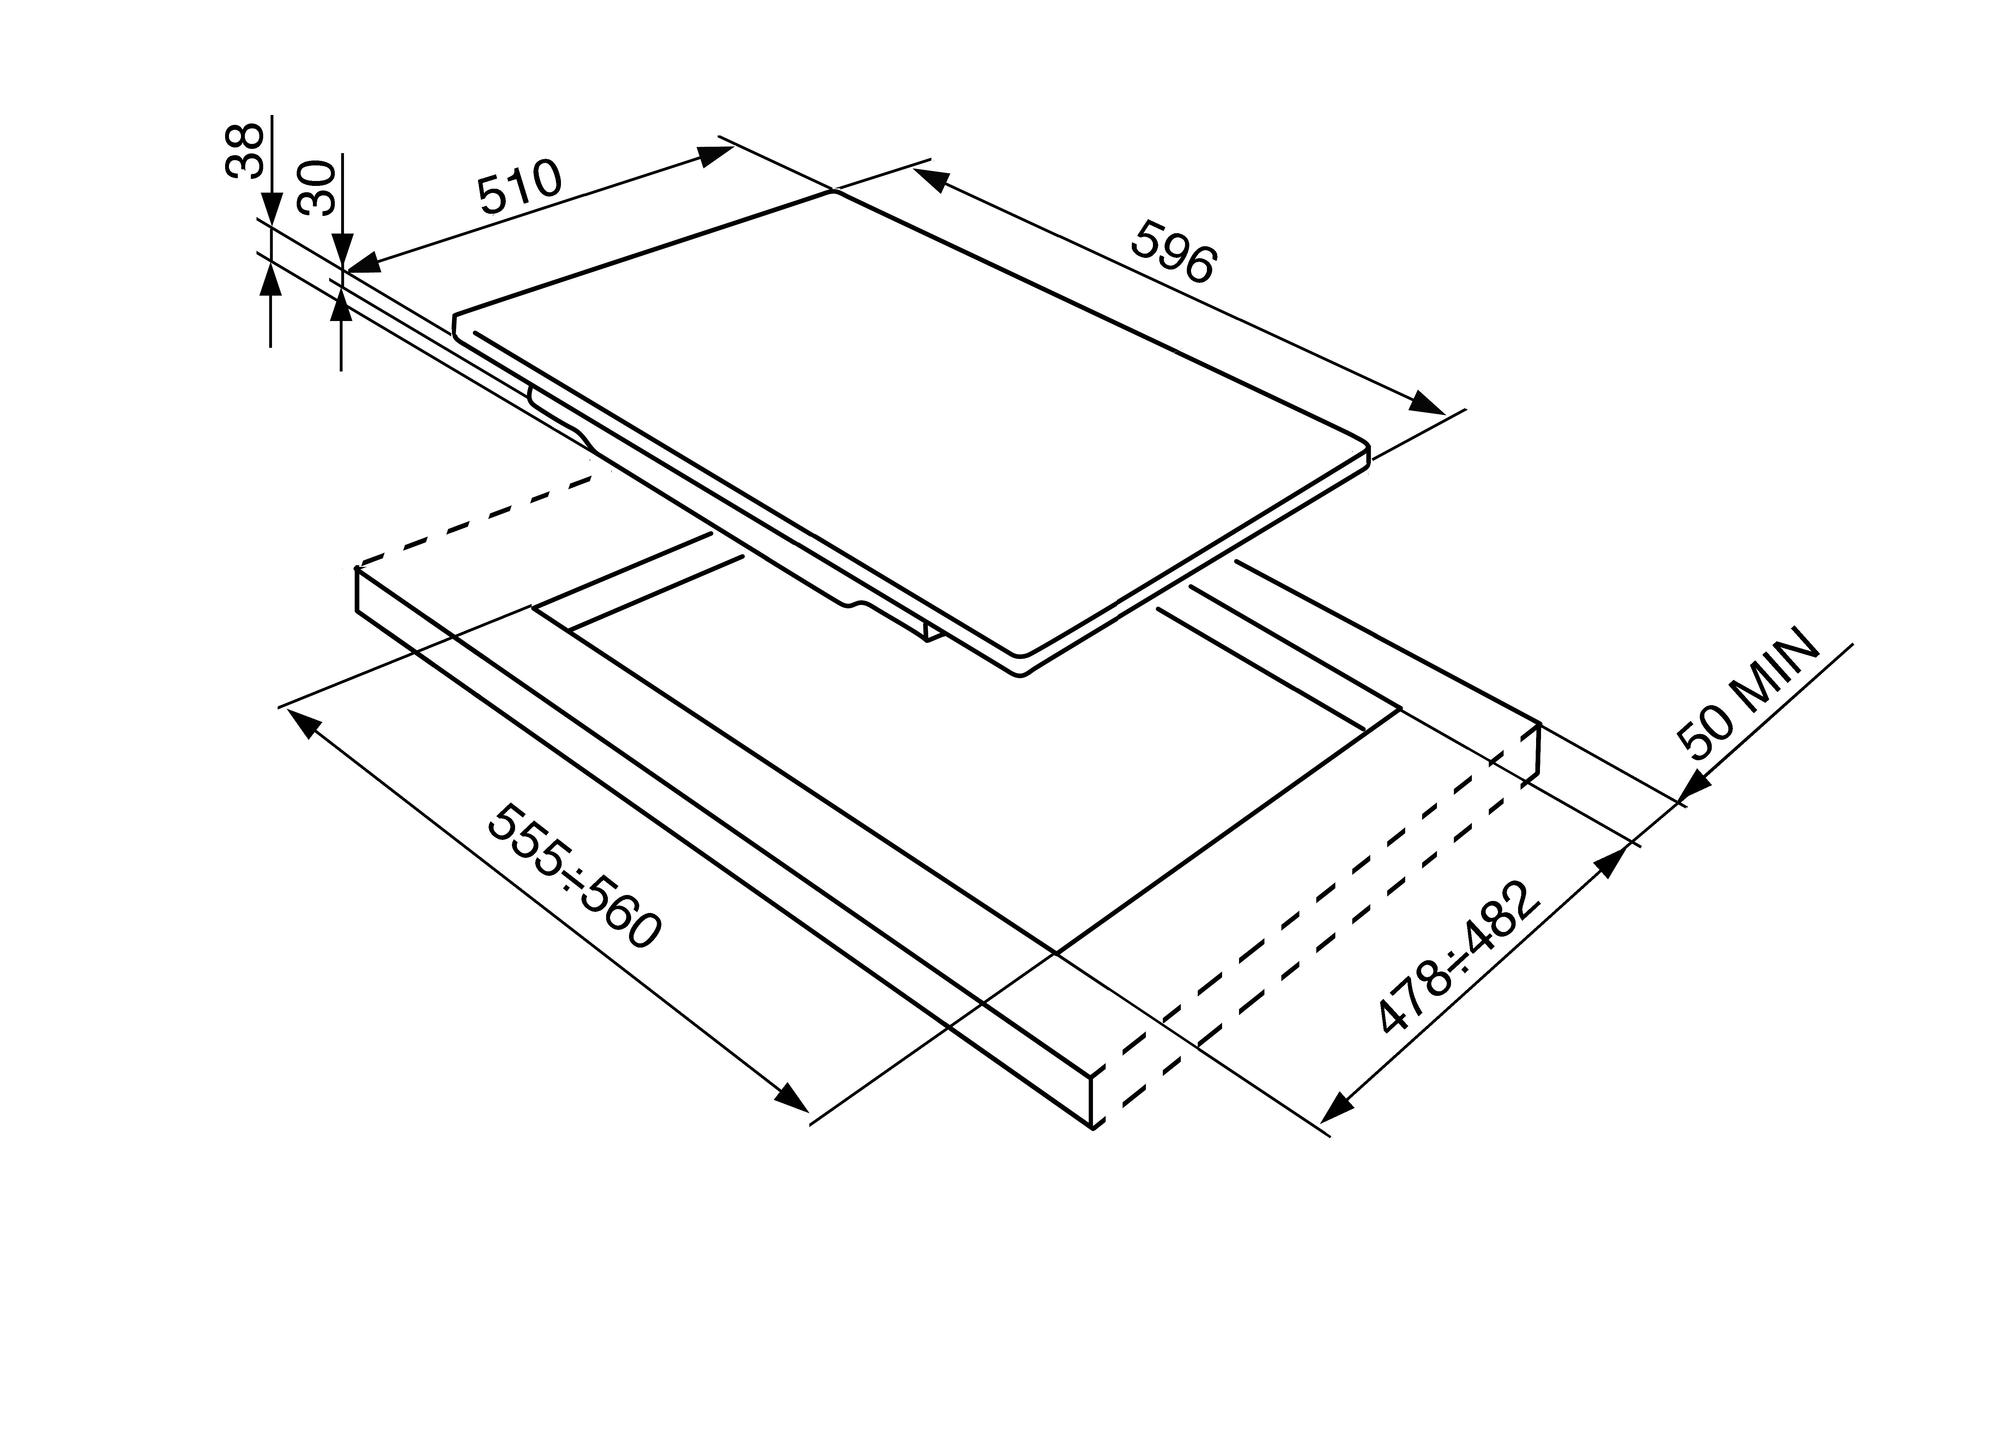 P64ES Smeg 60cm Stainless Steel Gas Hob Technical Drawing (in mm)